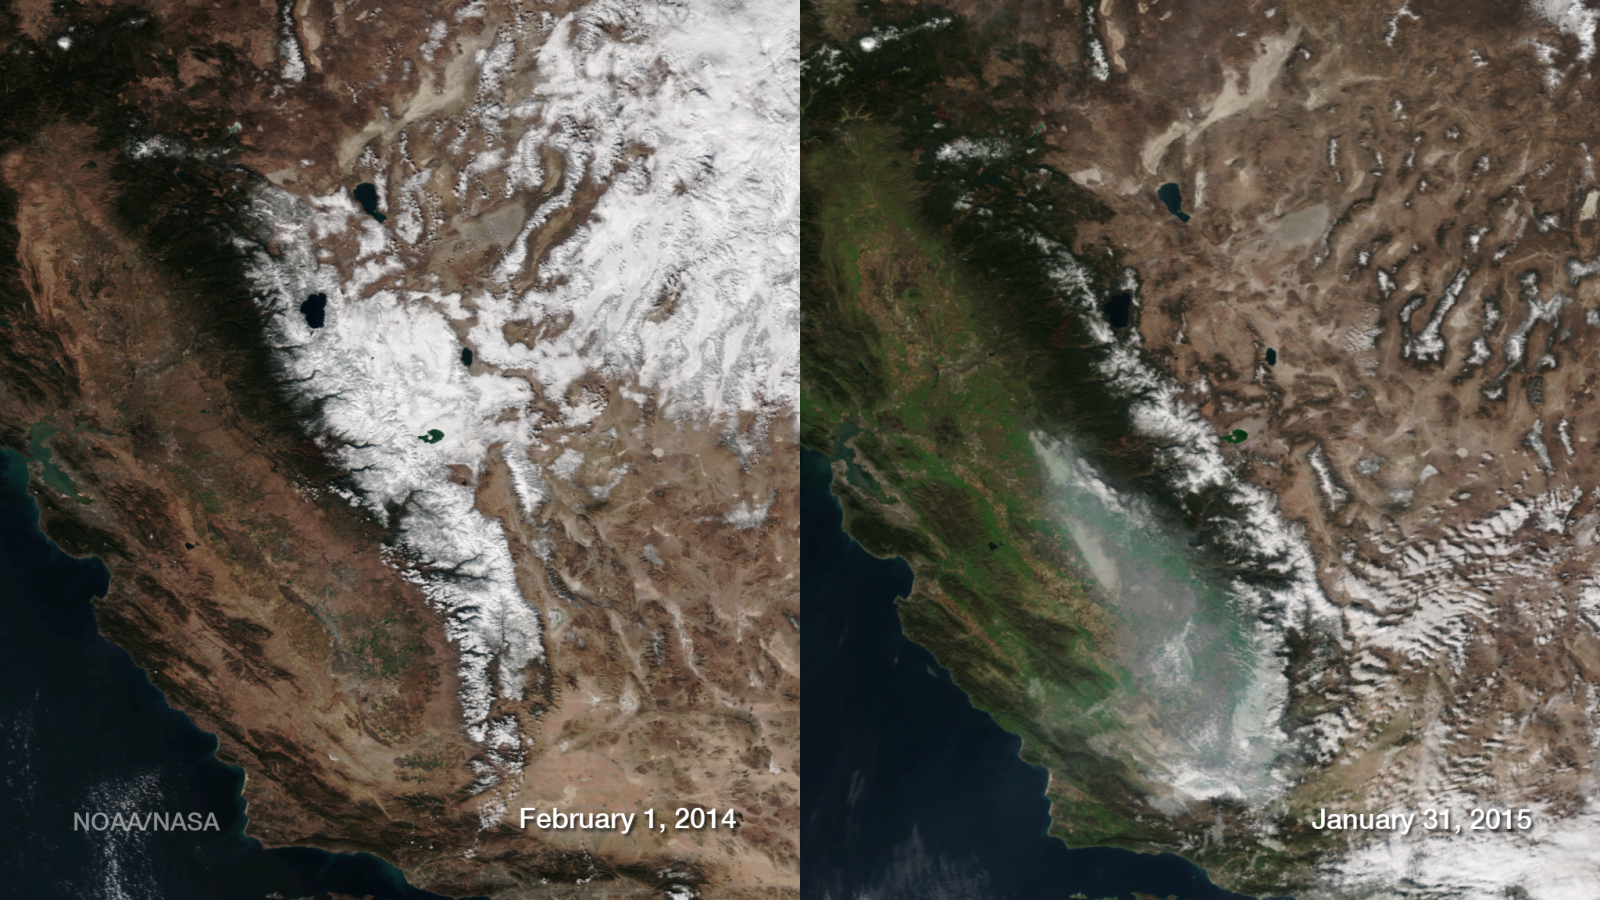 VIIRS data images of Sierra Nevada snowpack, comparing 2014-2015